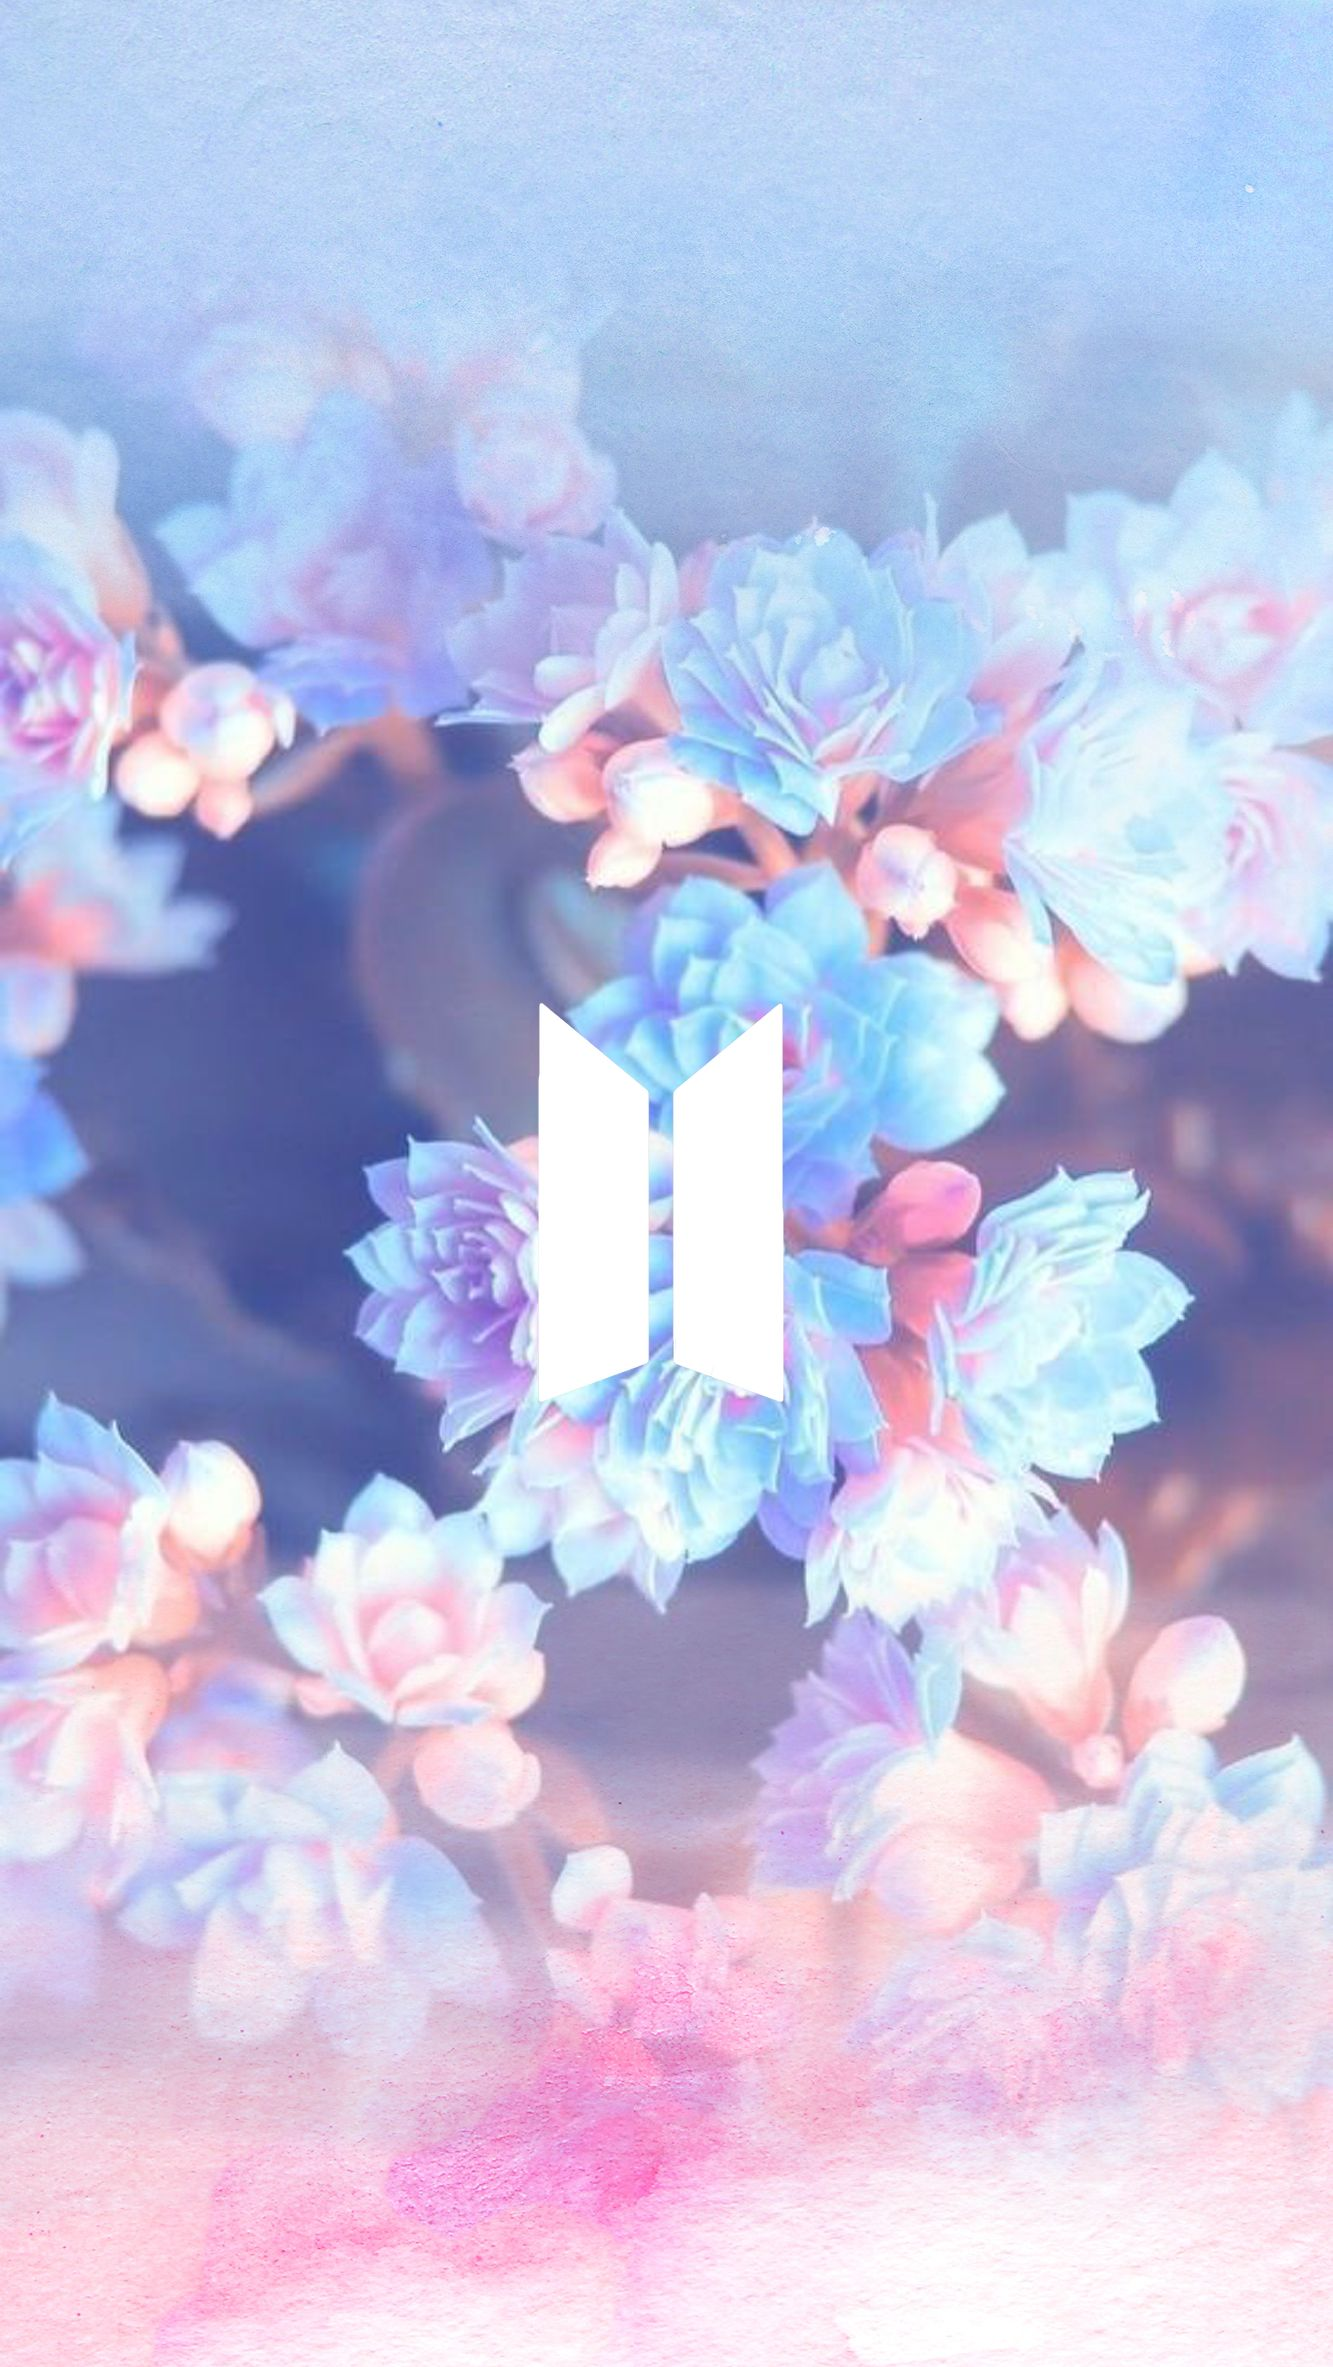 BTS's symbol over a pink and blue watercolor and flower